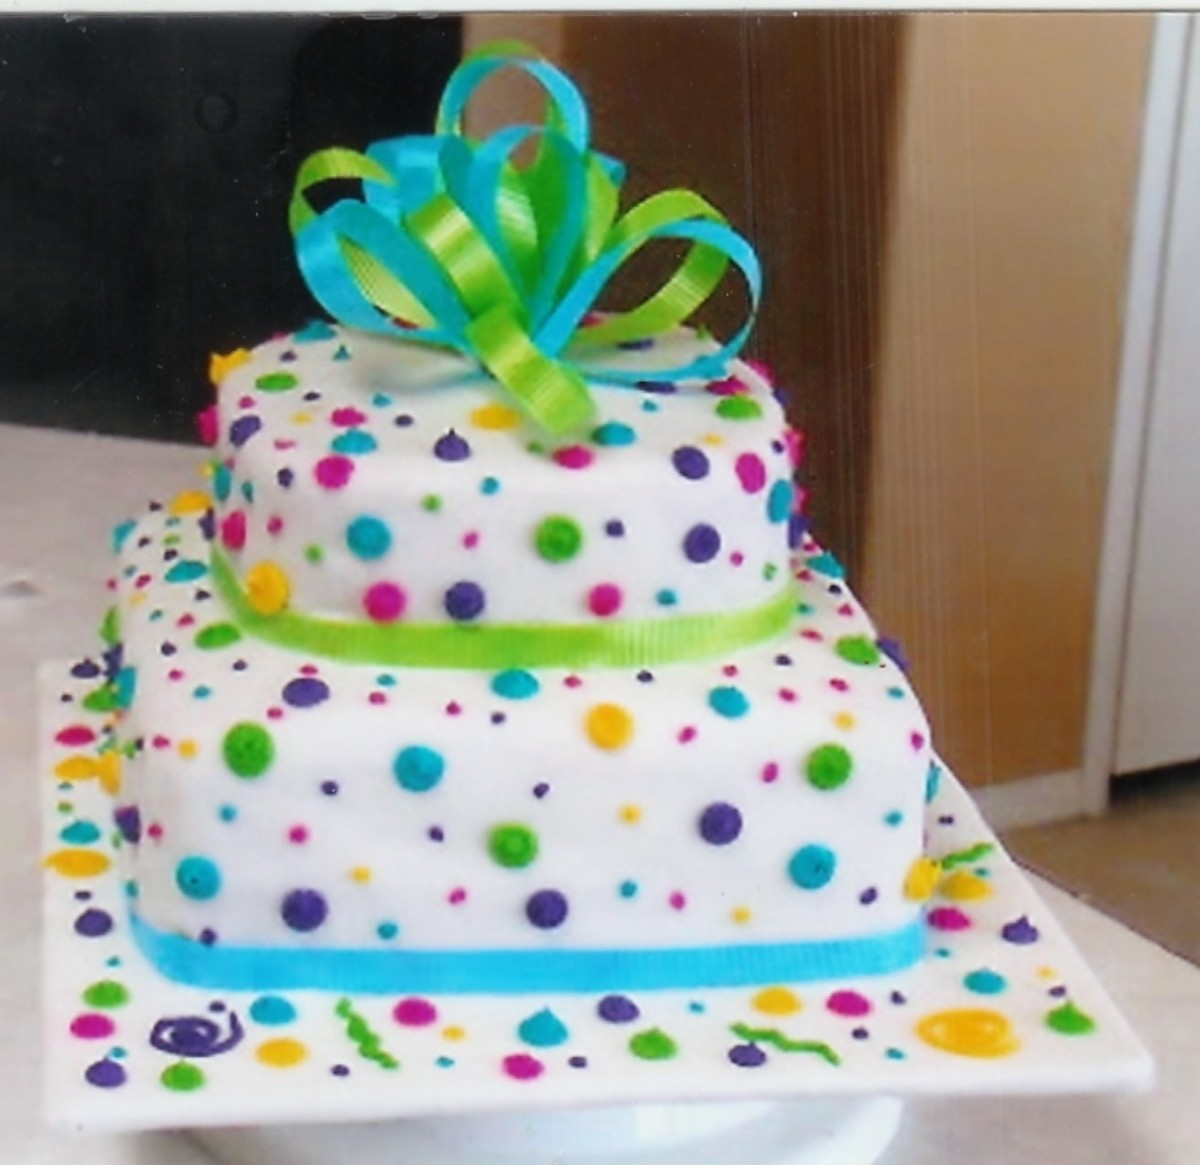 Free Cake Decorating Ideas For Beginners : Free Cake Decorating Lesson For Beginners HubPages